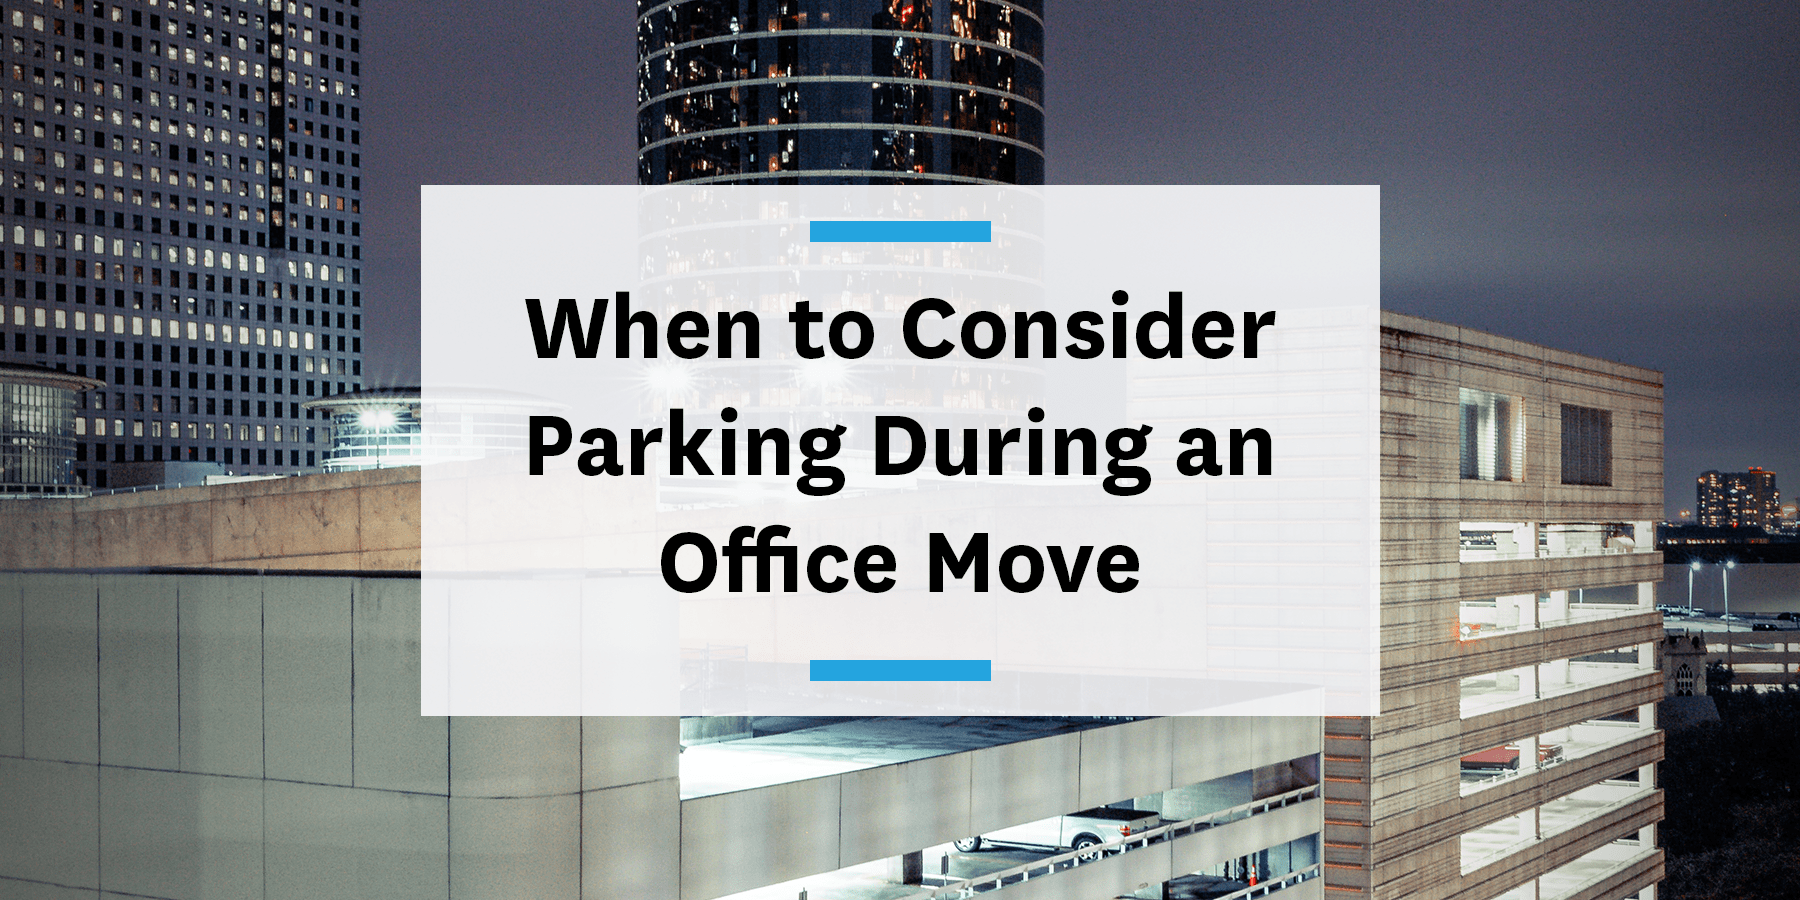 Feature for when to consider parking during an office move